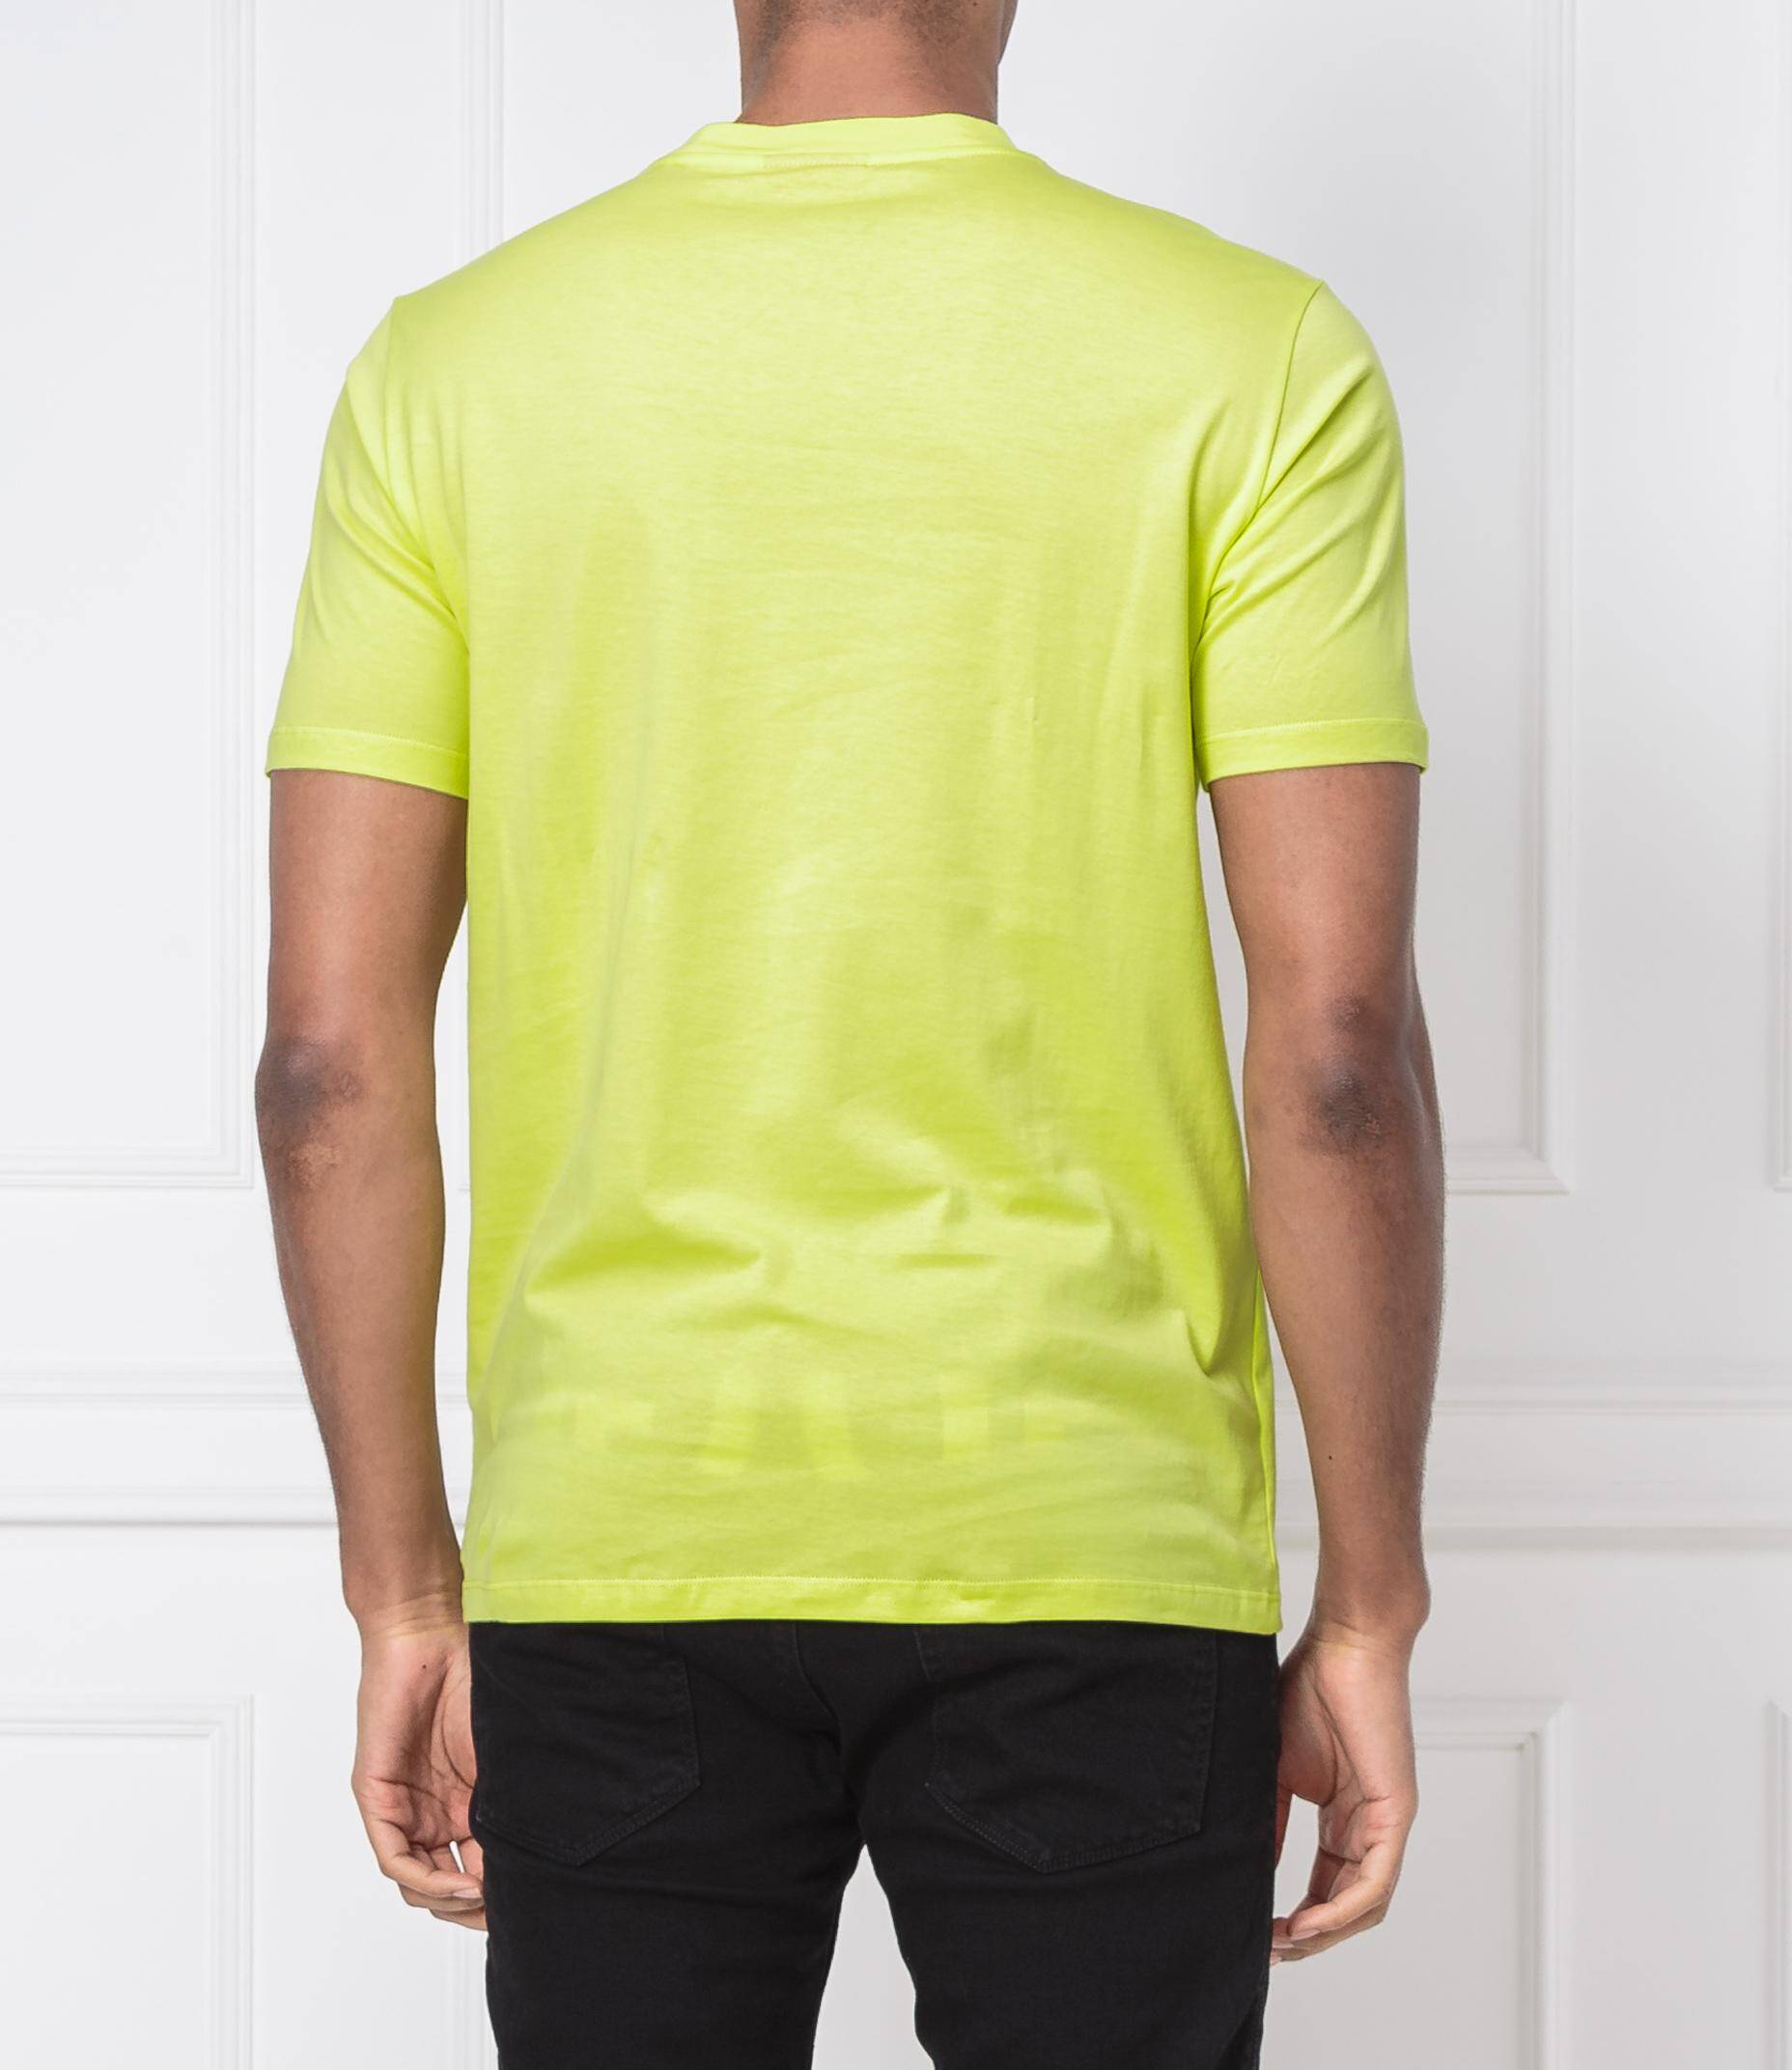 e9bca2576 T-shirt Dicagolino | Regular Fit Hugo | Yellow | Gomez.pl/en